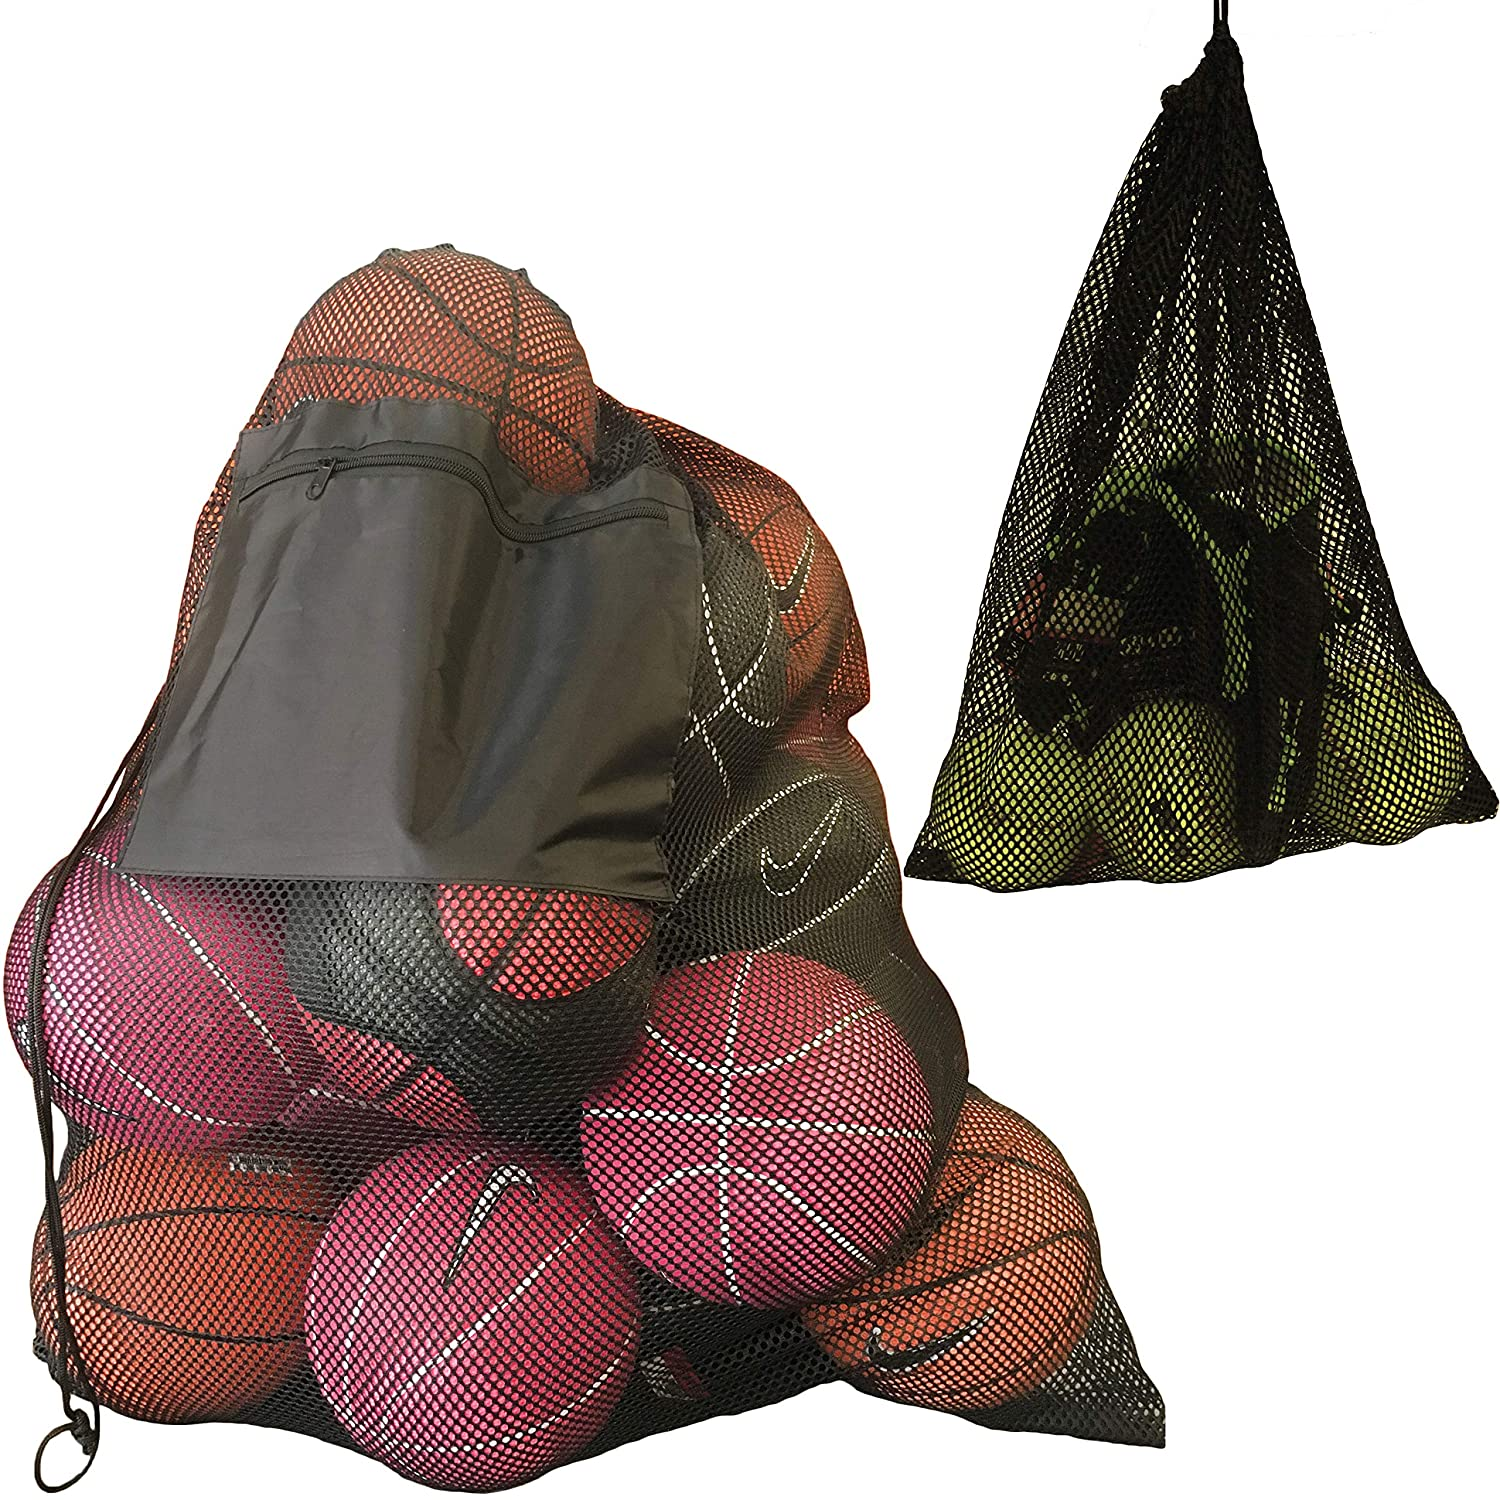 "2 Pack Mesh Ball Bag, Mesh Sports Equipment Bags - Heavy Duty and Extra Thick Drawstring 29"" x 38"" Sport Mesh Ball Bag With Shoulder Strap and Front Pocket and Sport Mesh Equipment Bag 14"" x 18 Youngever LLC"